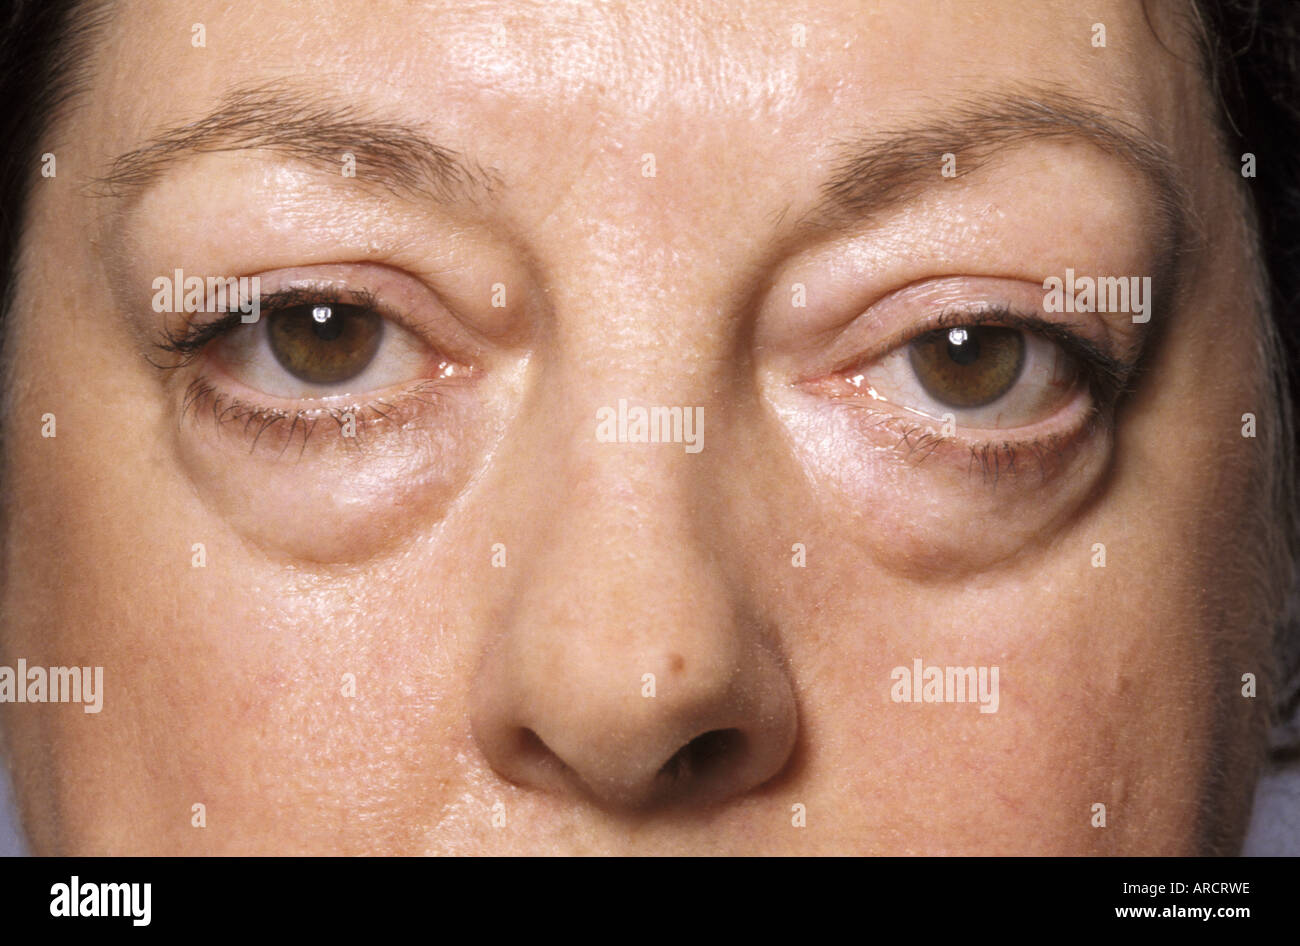 a photograph of a female suffering from exophthalmos a bulging of the eye anteriorly out